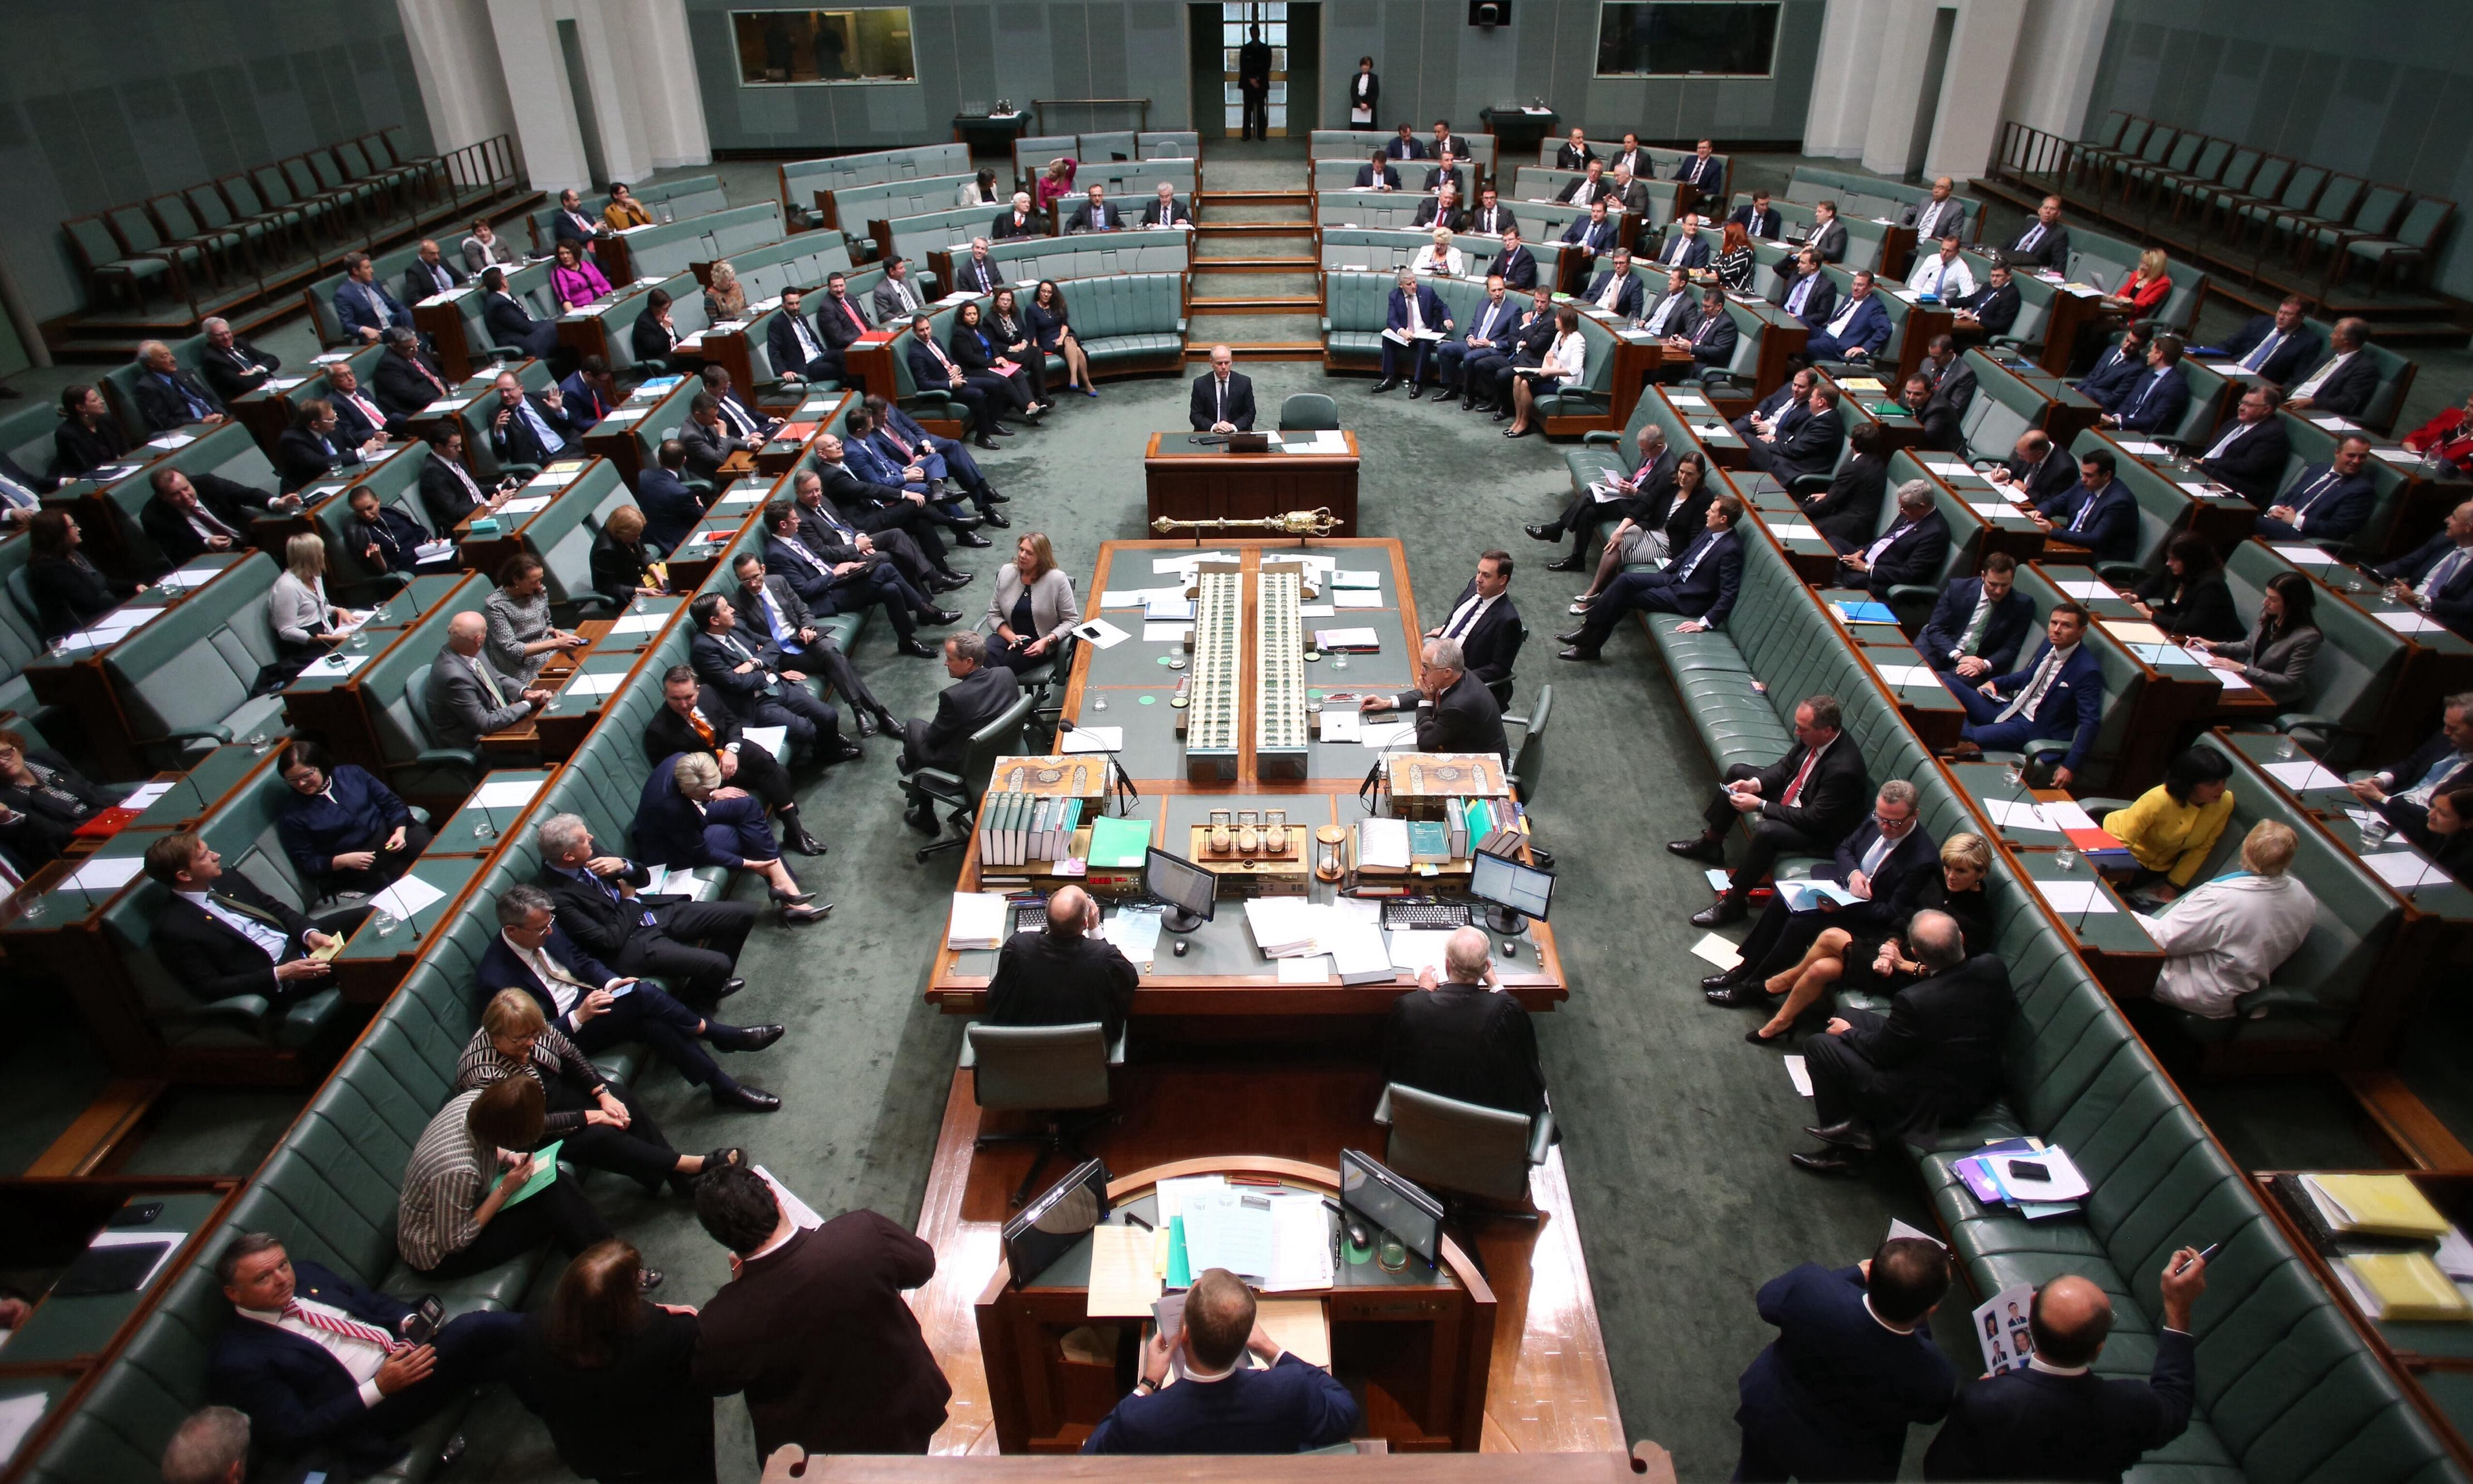 Australian politicians urge donations and spending caps – while putting boot into media